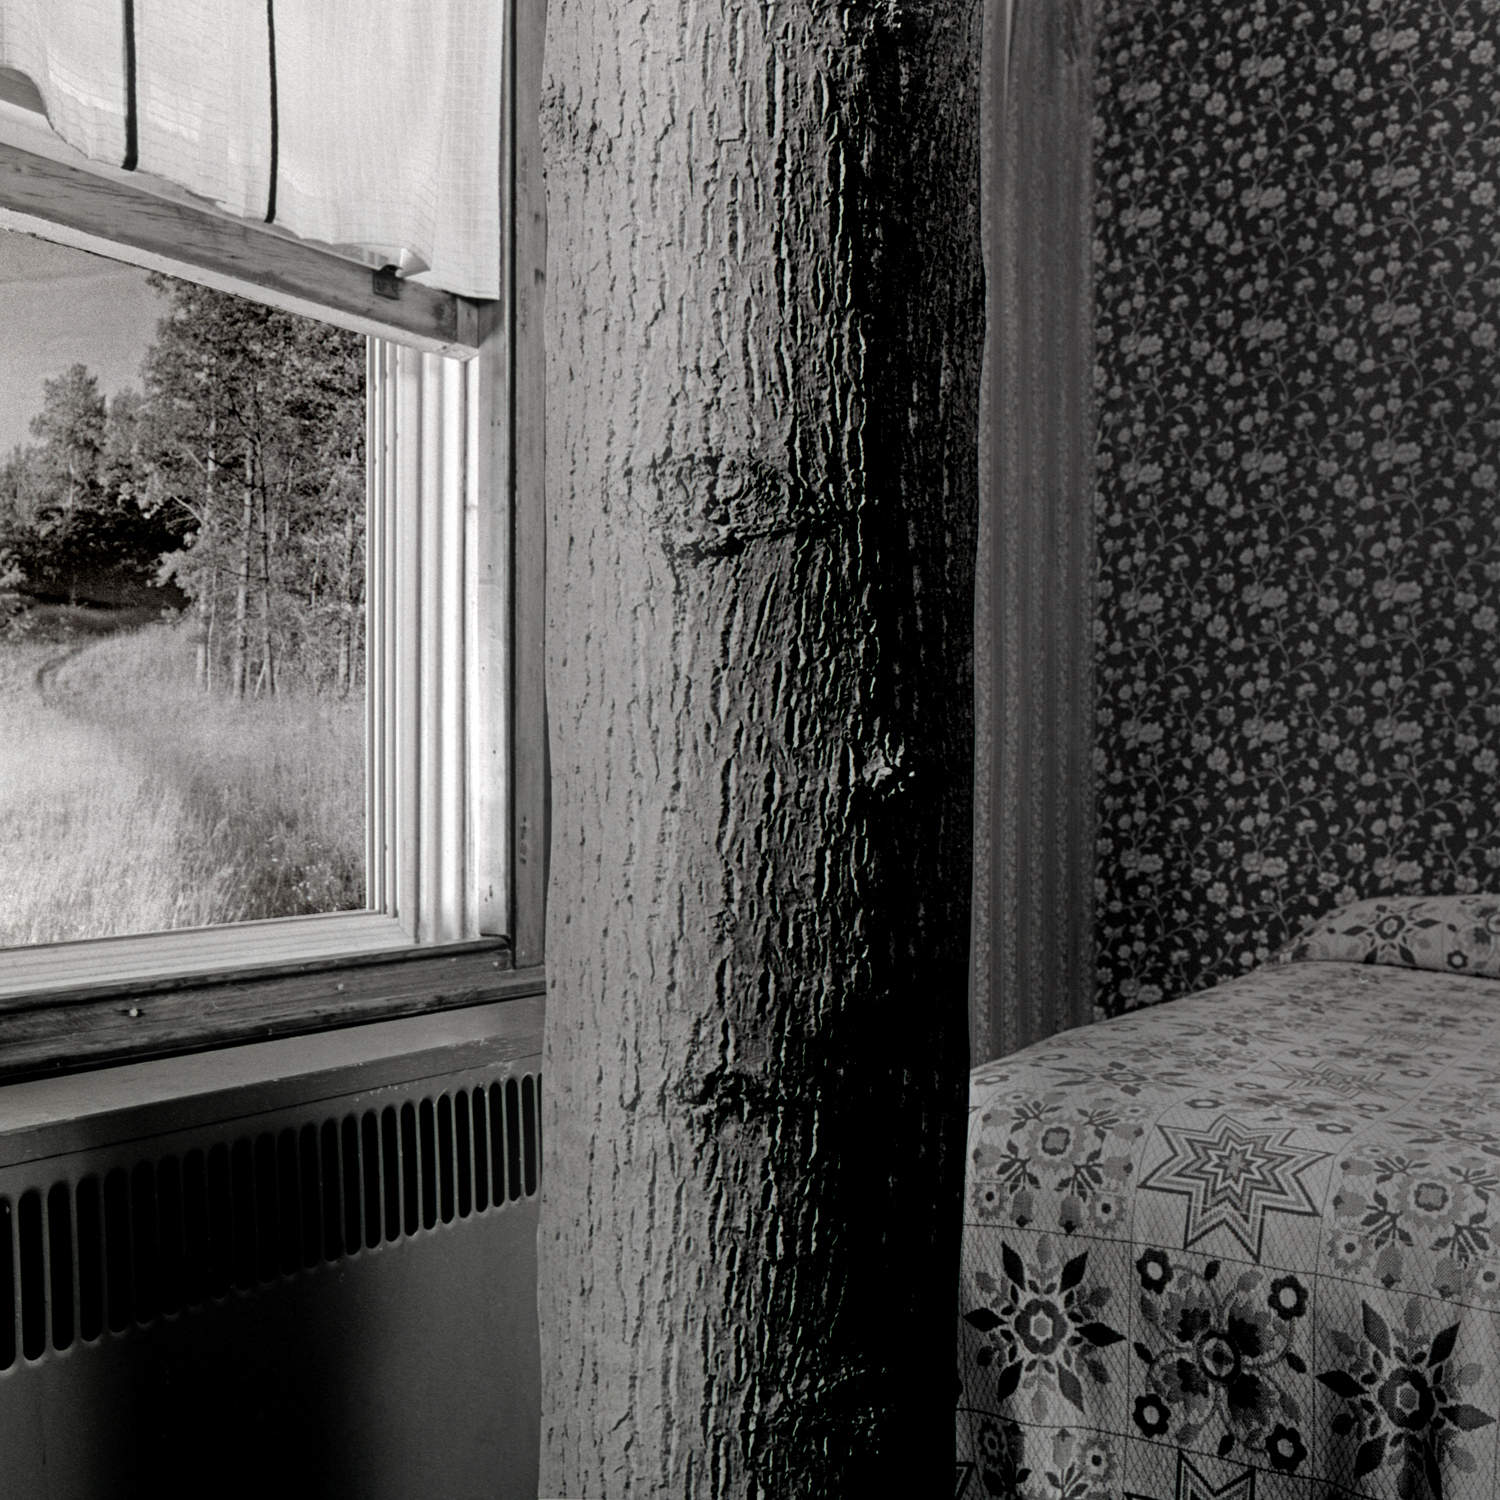 Window, 2006, archival pigment print on paper